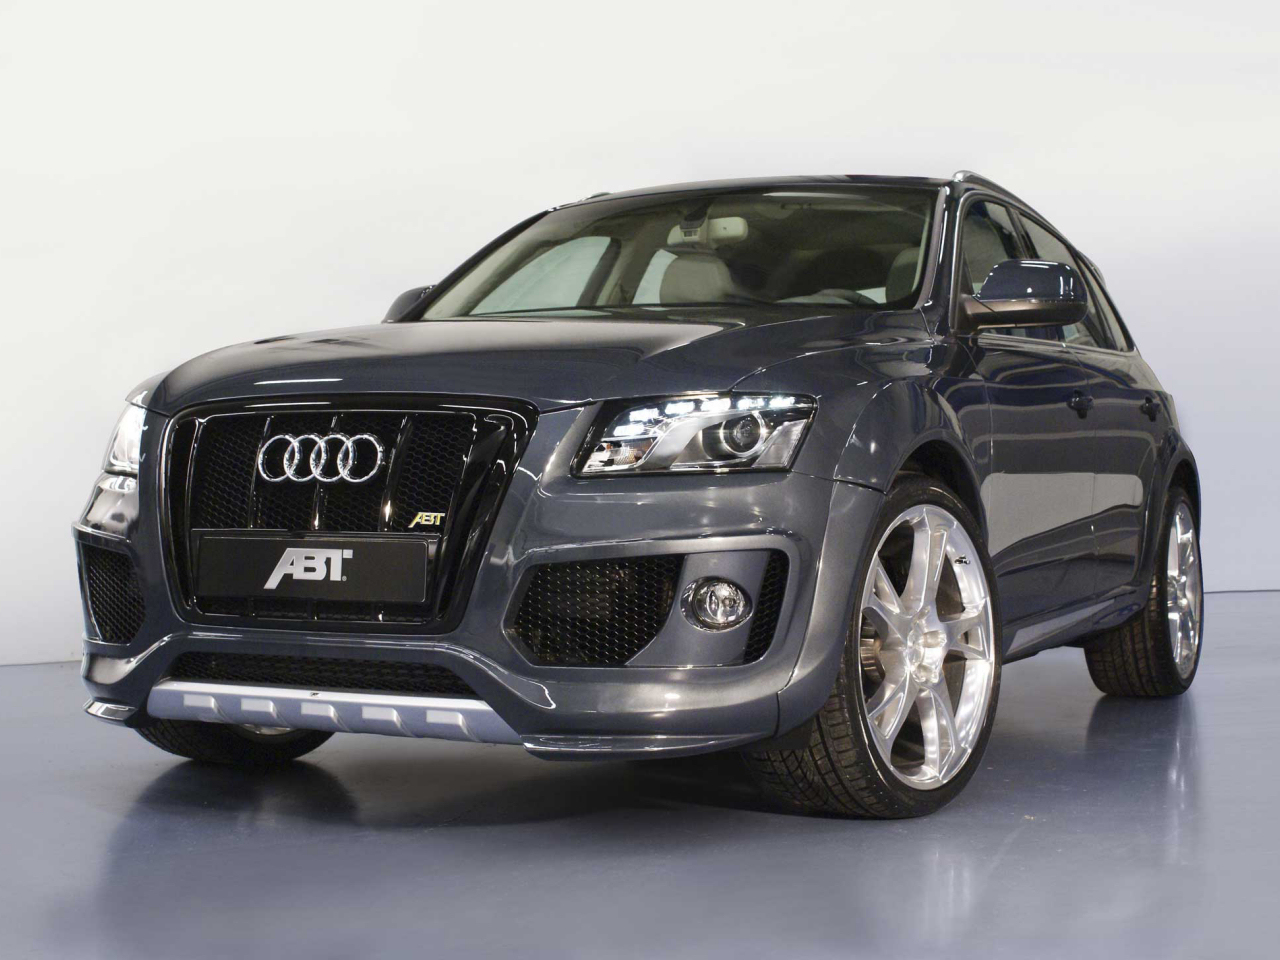 New Audi Q5 by Abt Sportsline